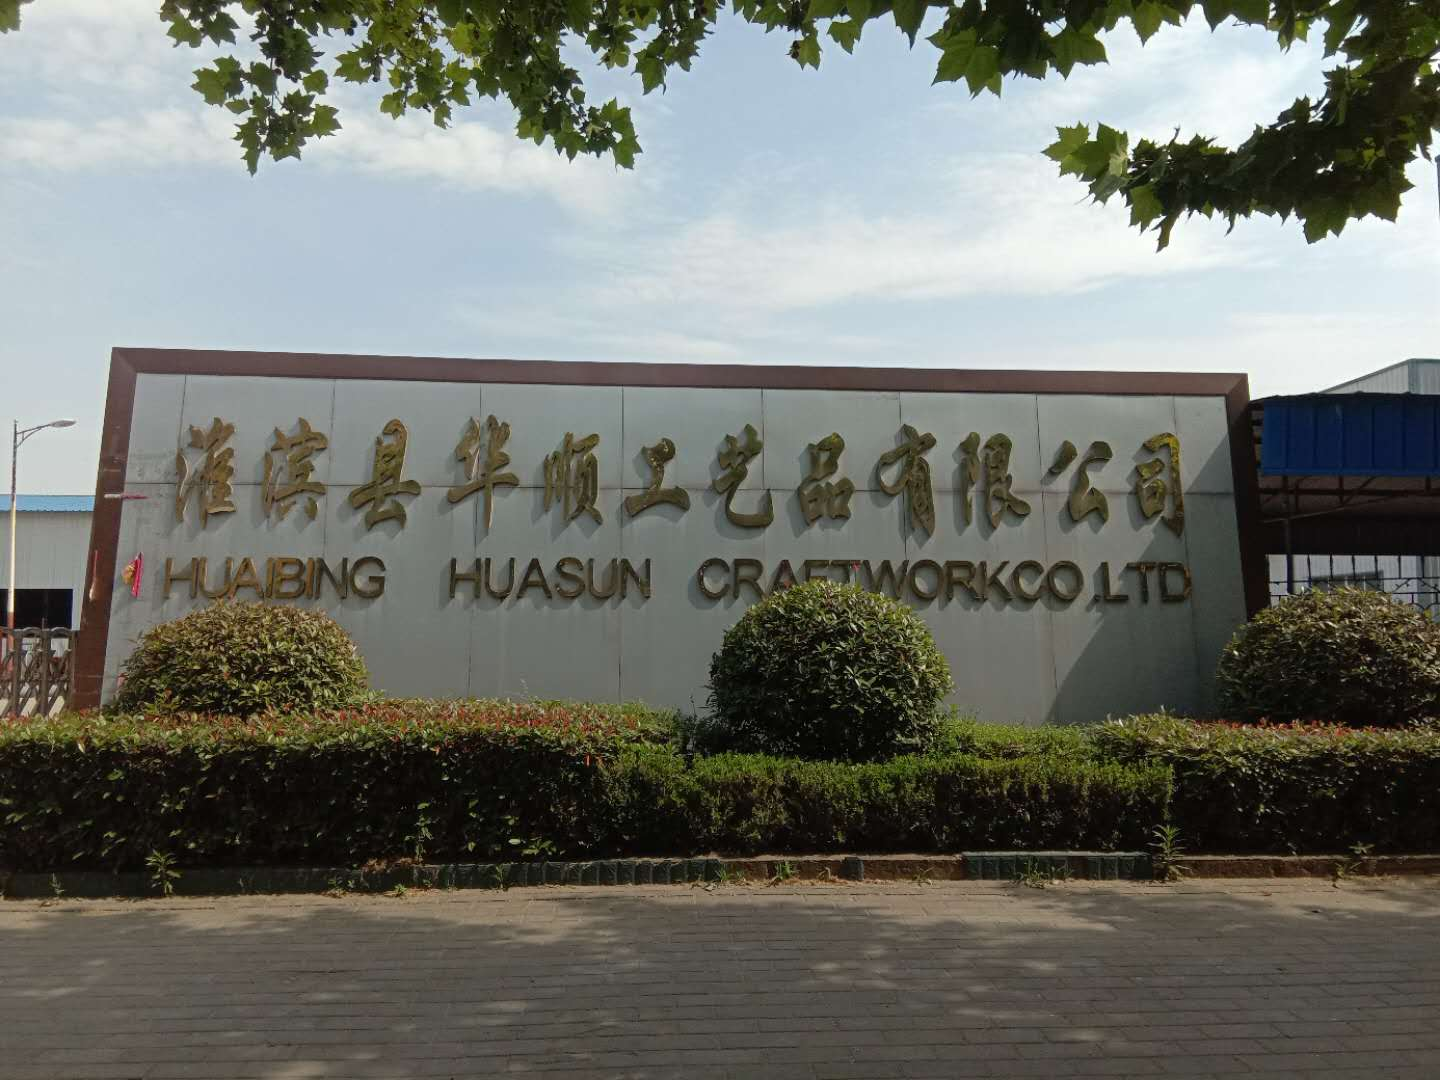 HUAI BING HUASUN CRAFTWORK CO., LTD